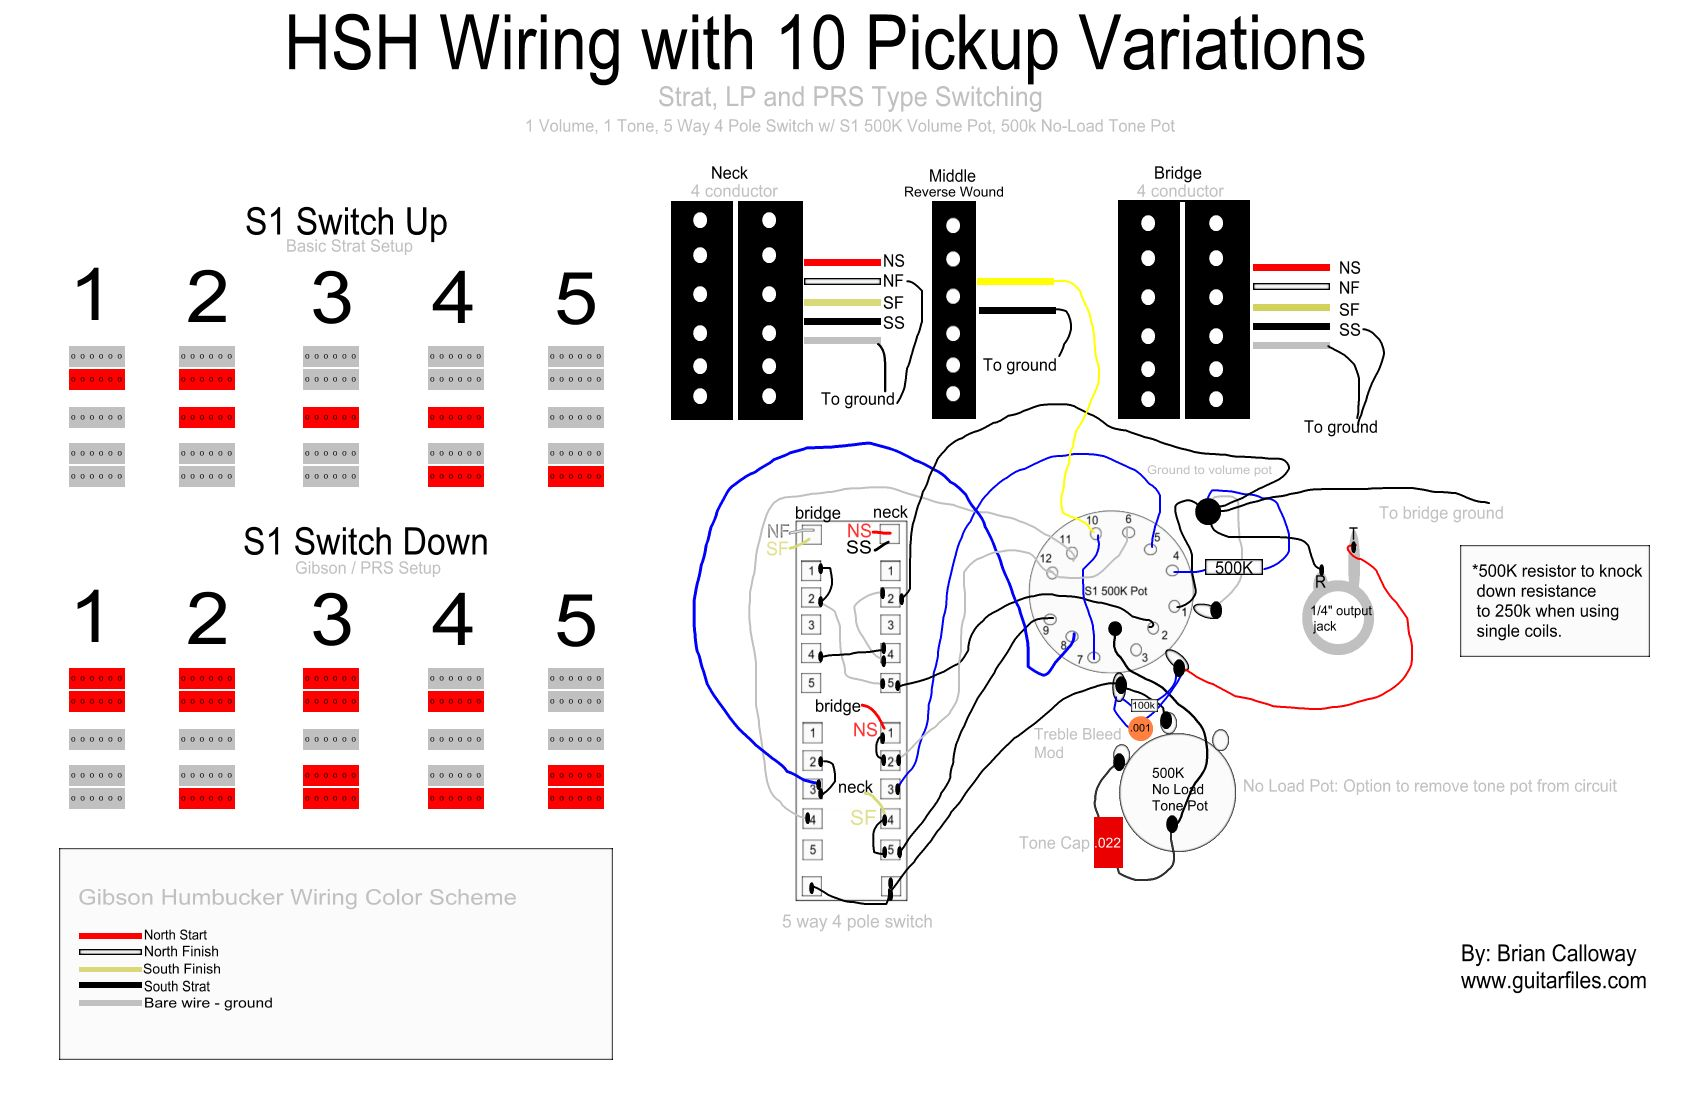 hight resolution of hsh guitar wiring 10 pickup combinations 4 pole switch and s1 hsh guitar wiring 10 pickup combinations 4 pole switch and s1